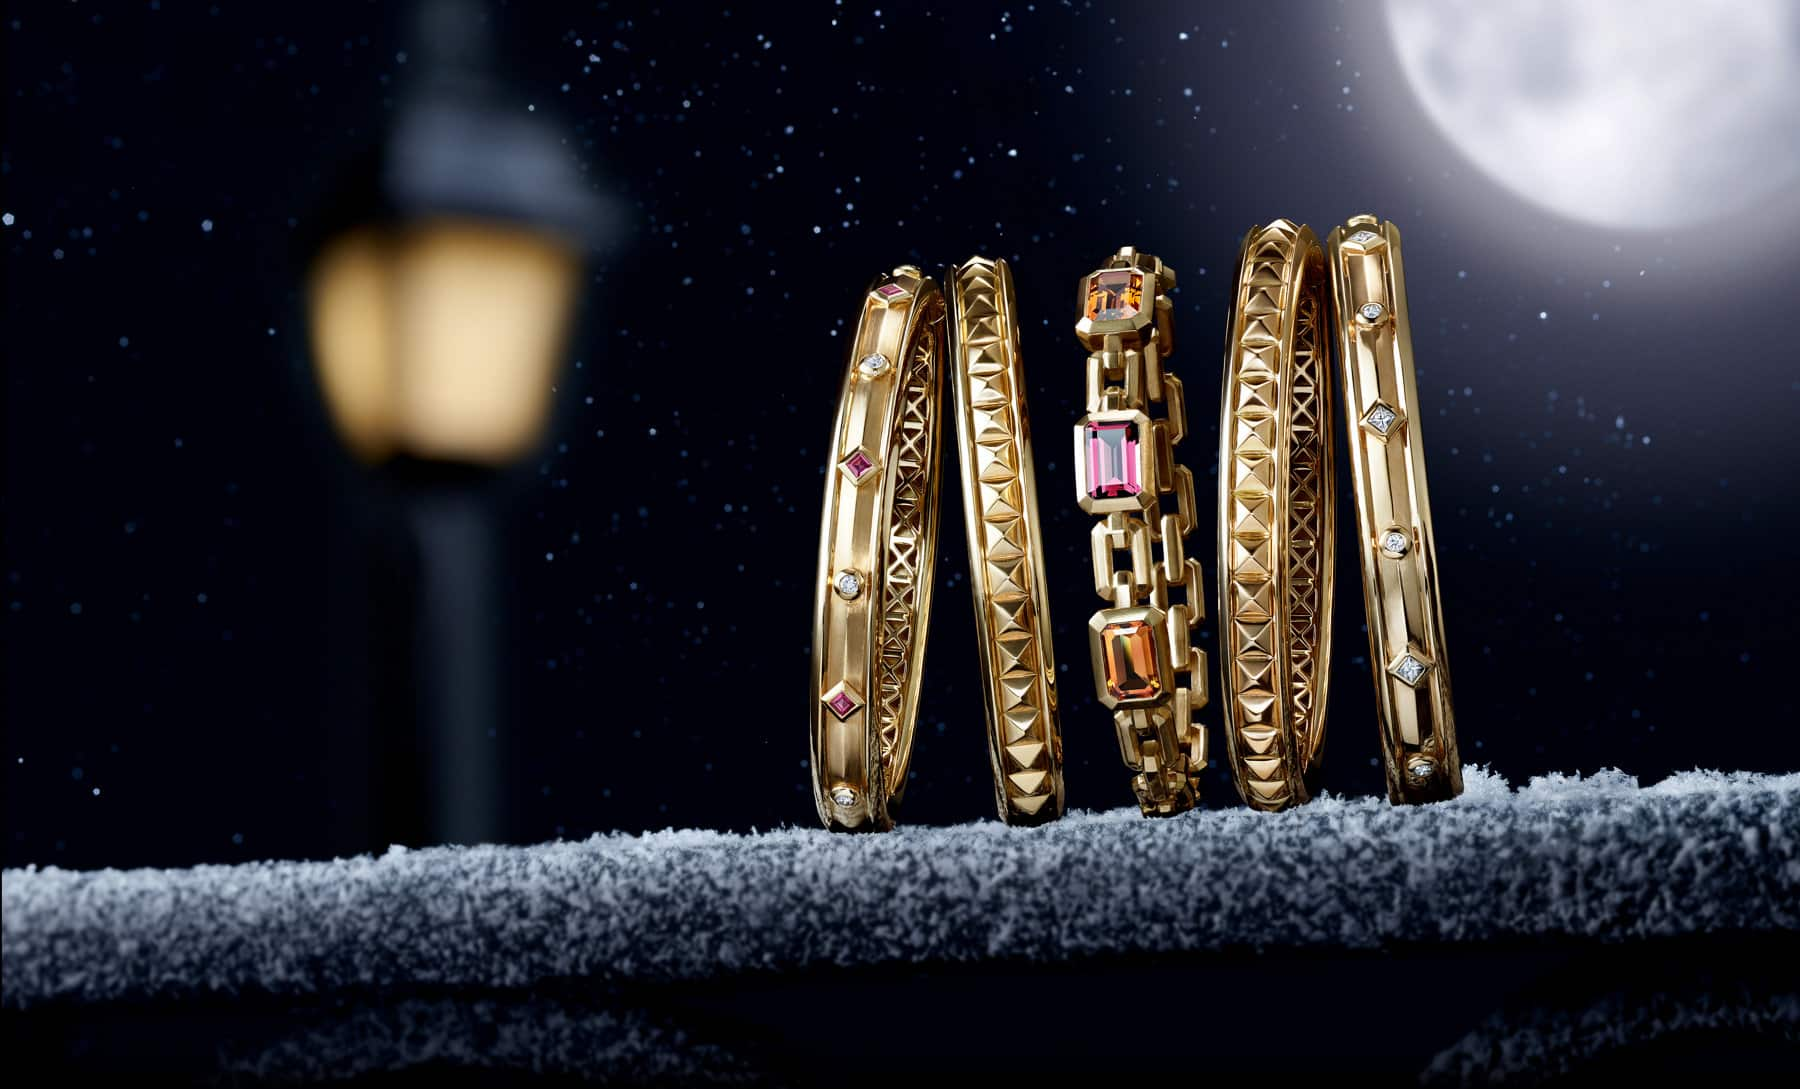 Five David Yurman bracelets from the Renaissance and Novella collections are leaning against each other at night on a stone ledge lightly dusted with snowflakes. The women's jewelry is crafted from 18K yellow gold with or without white diamonds, rubies, citrine or pink tourmaline. In the dark background is the golden glow of a nearby street light and a full moon.